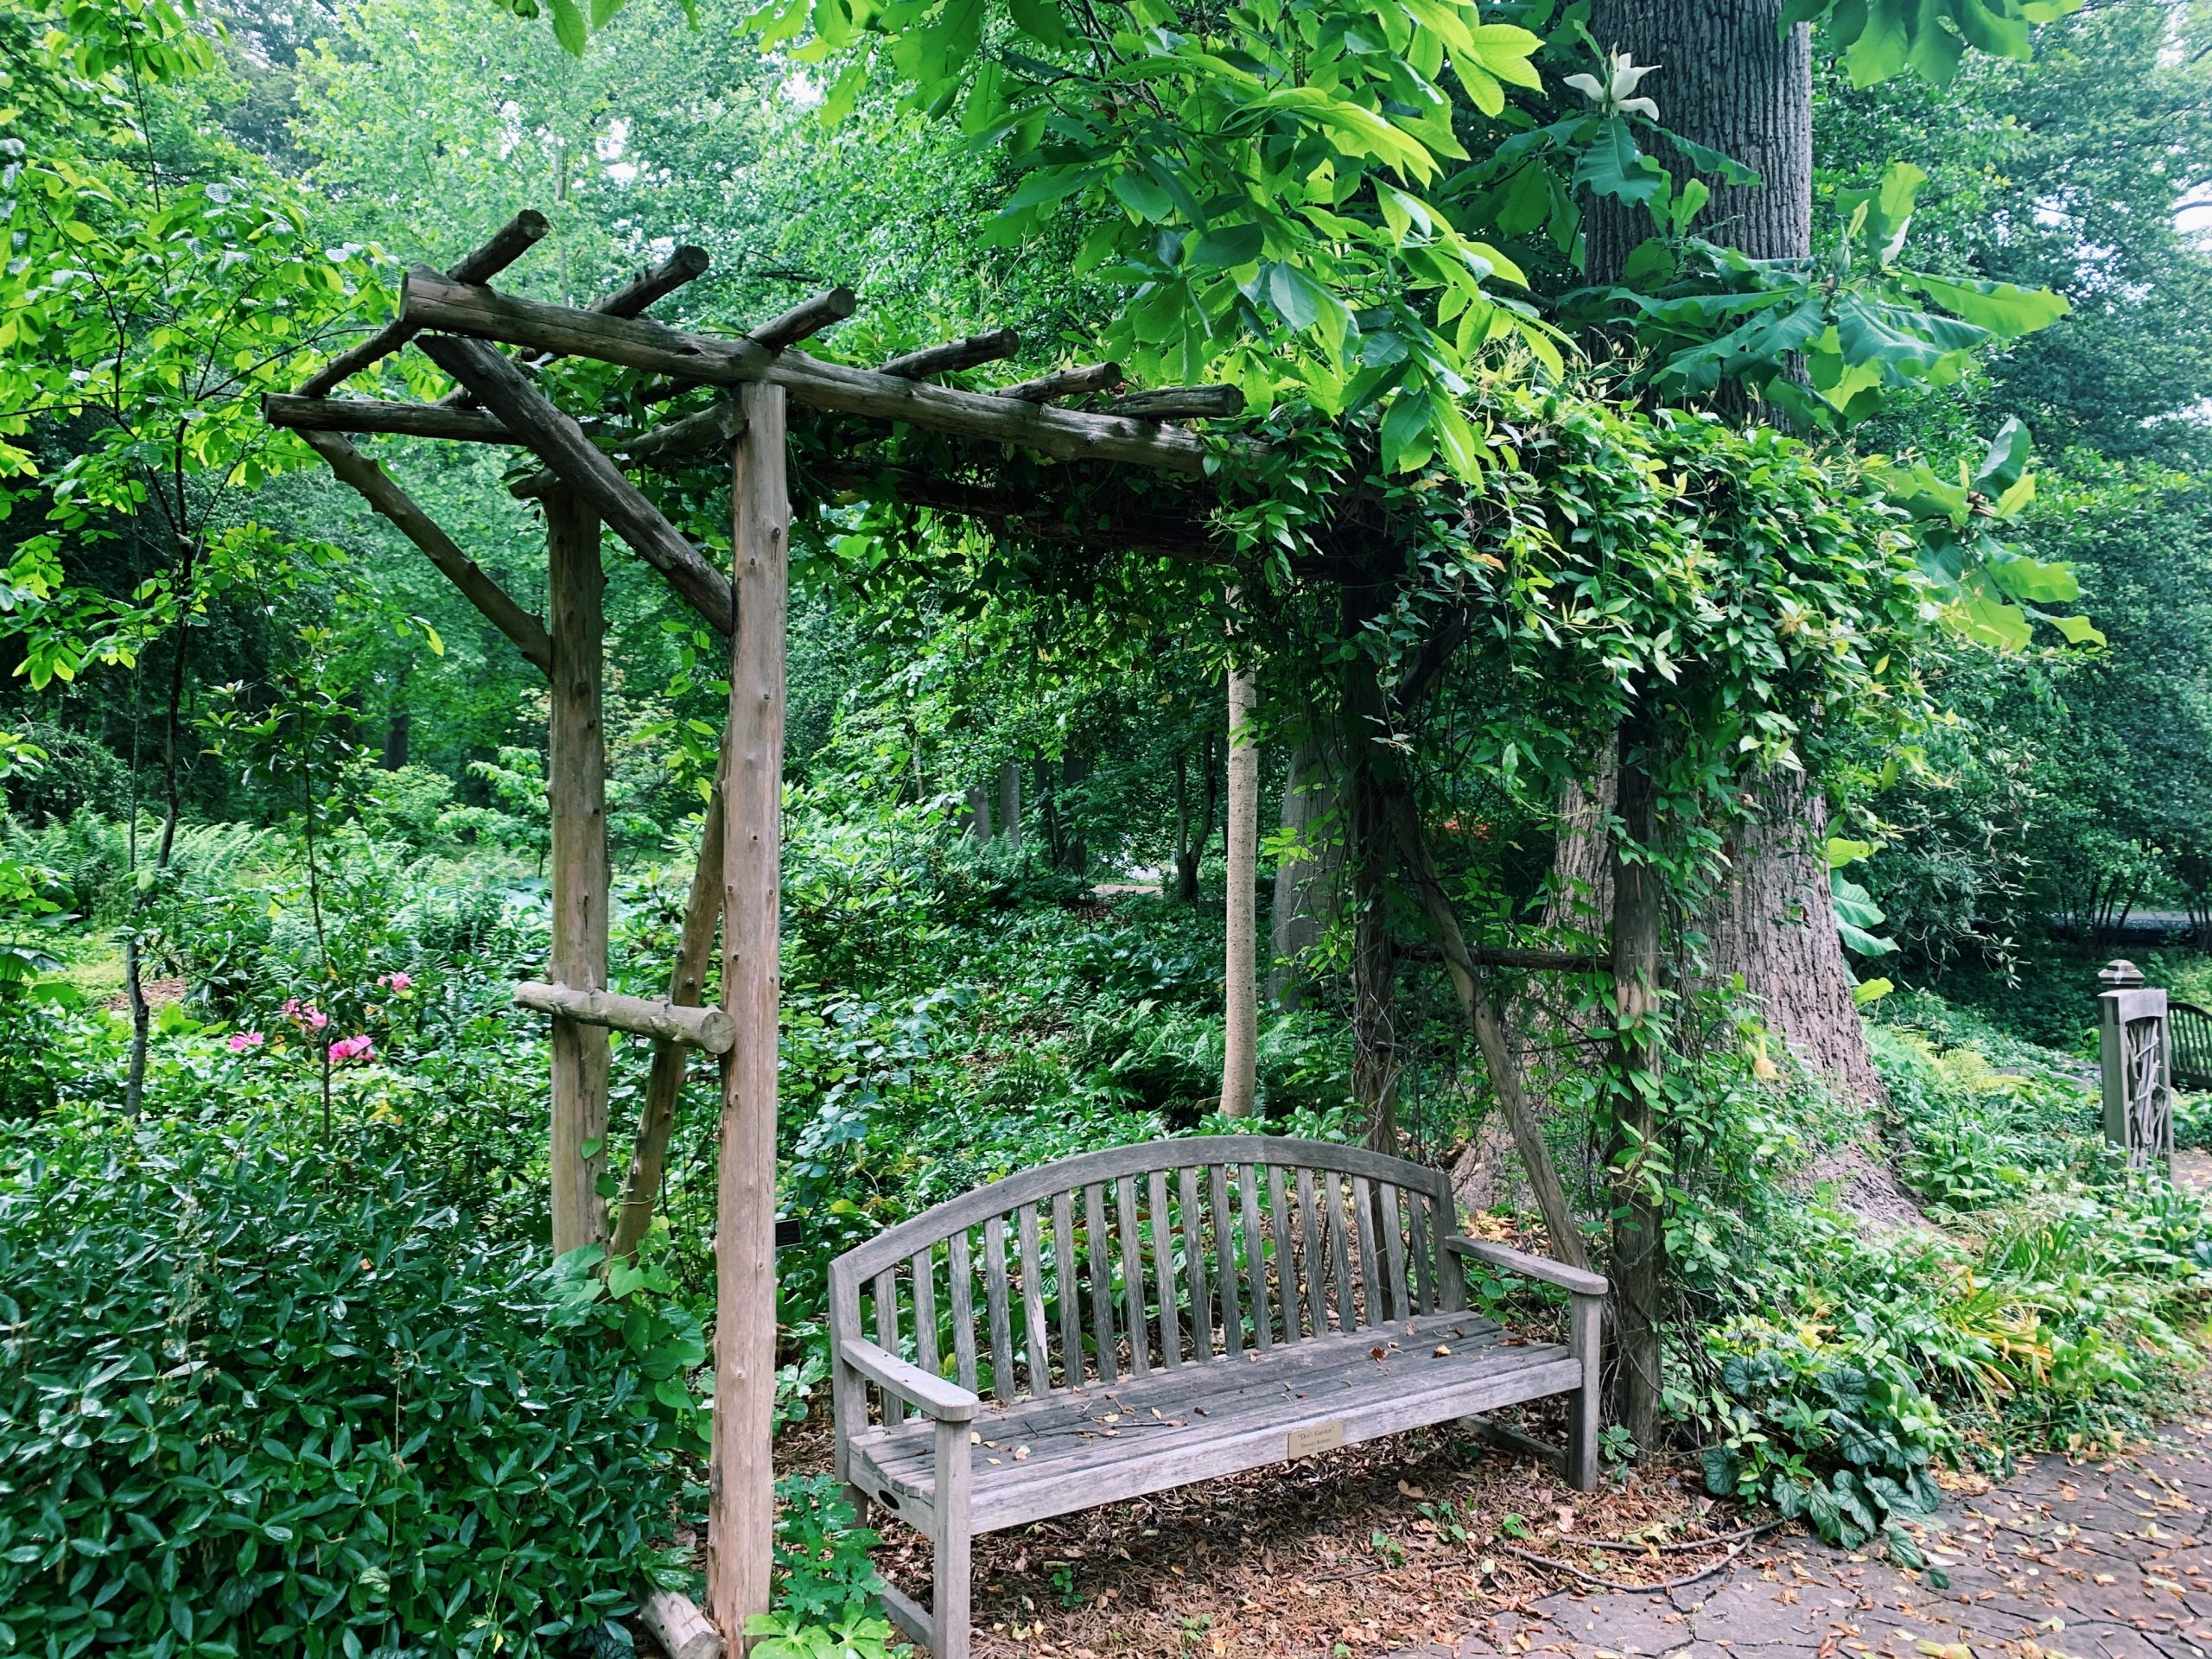 A bench in the lush green of Dot's Garden